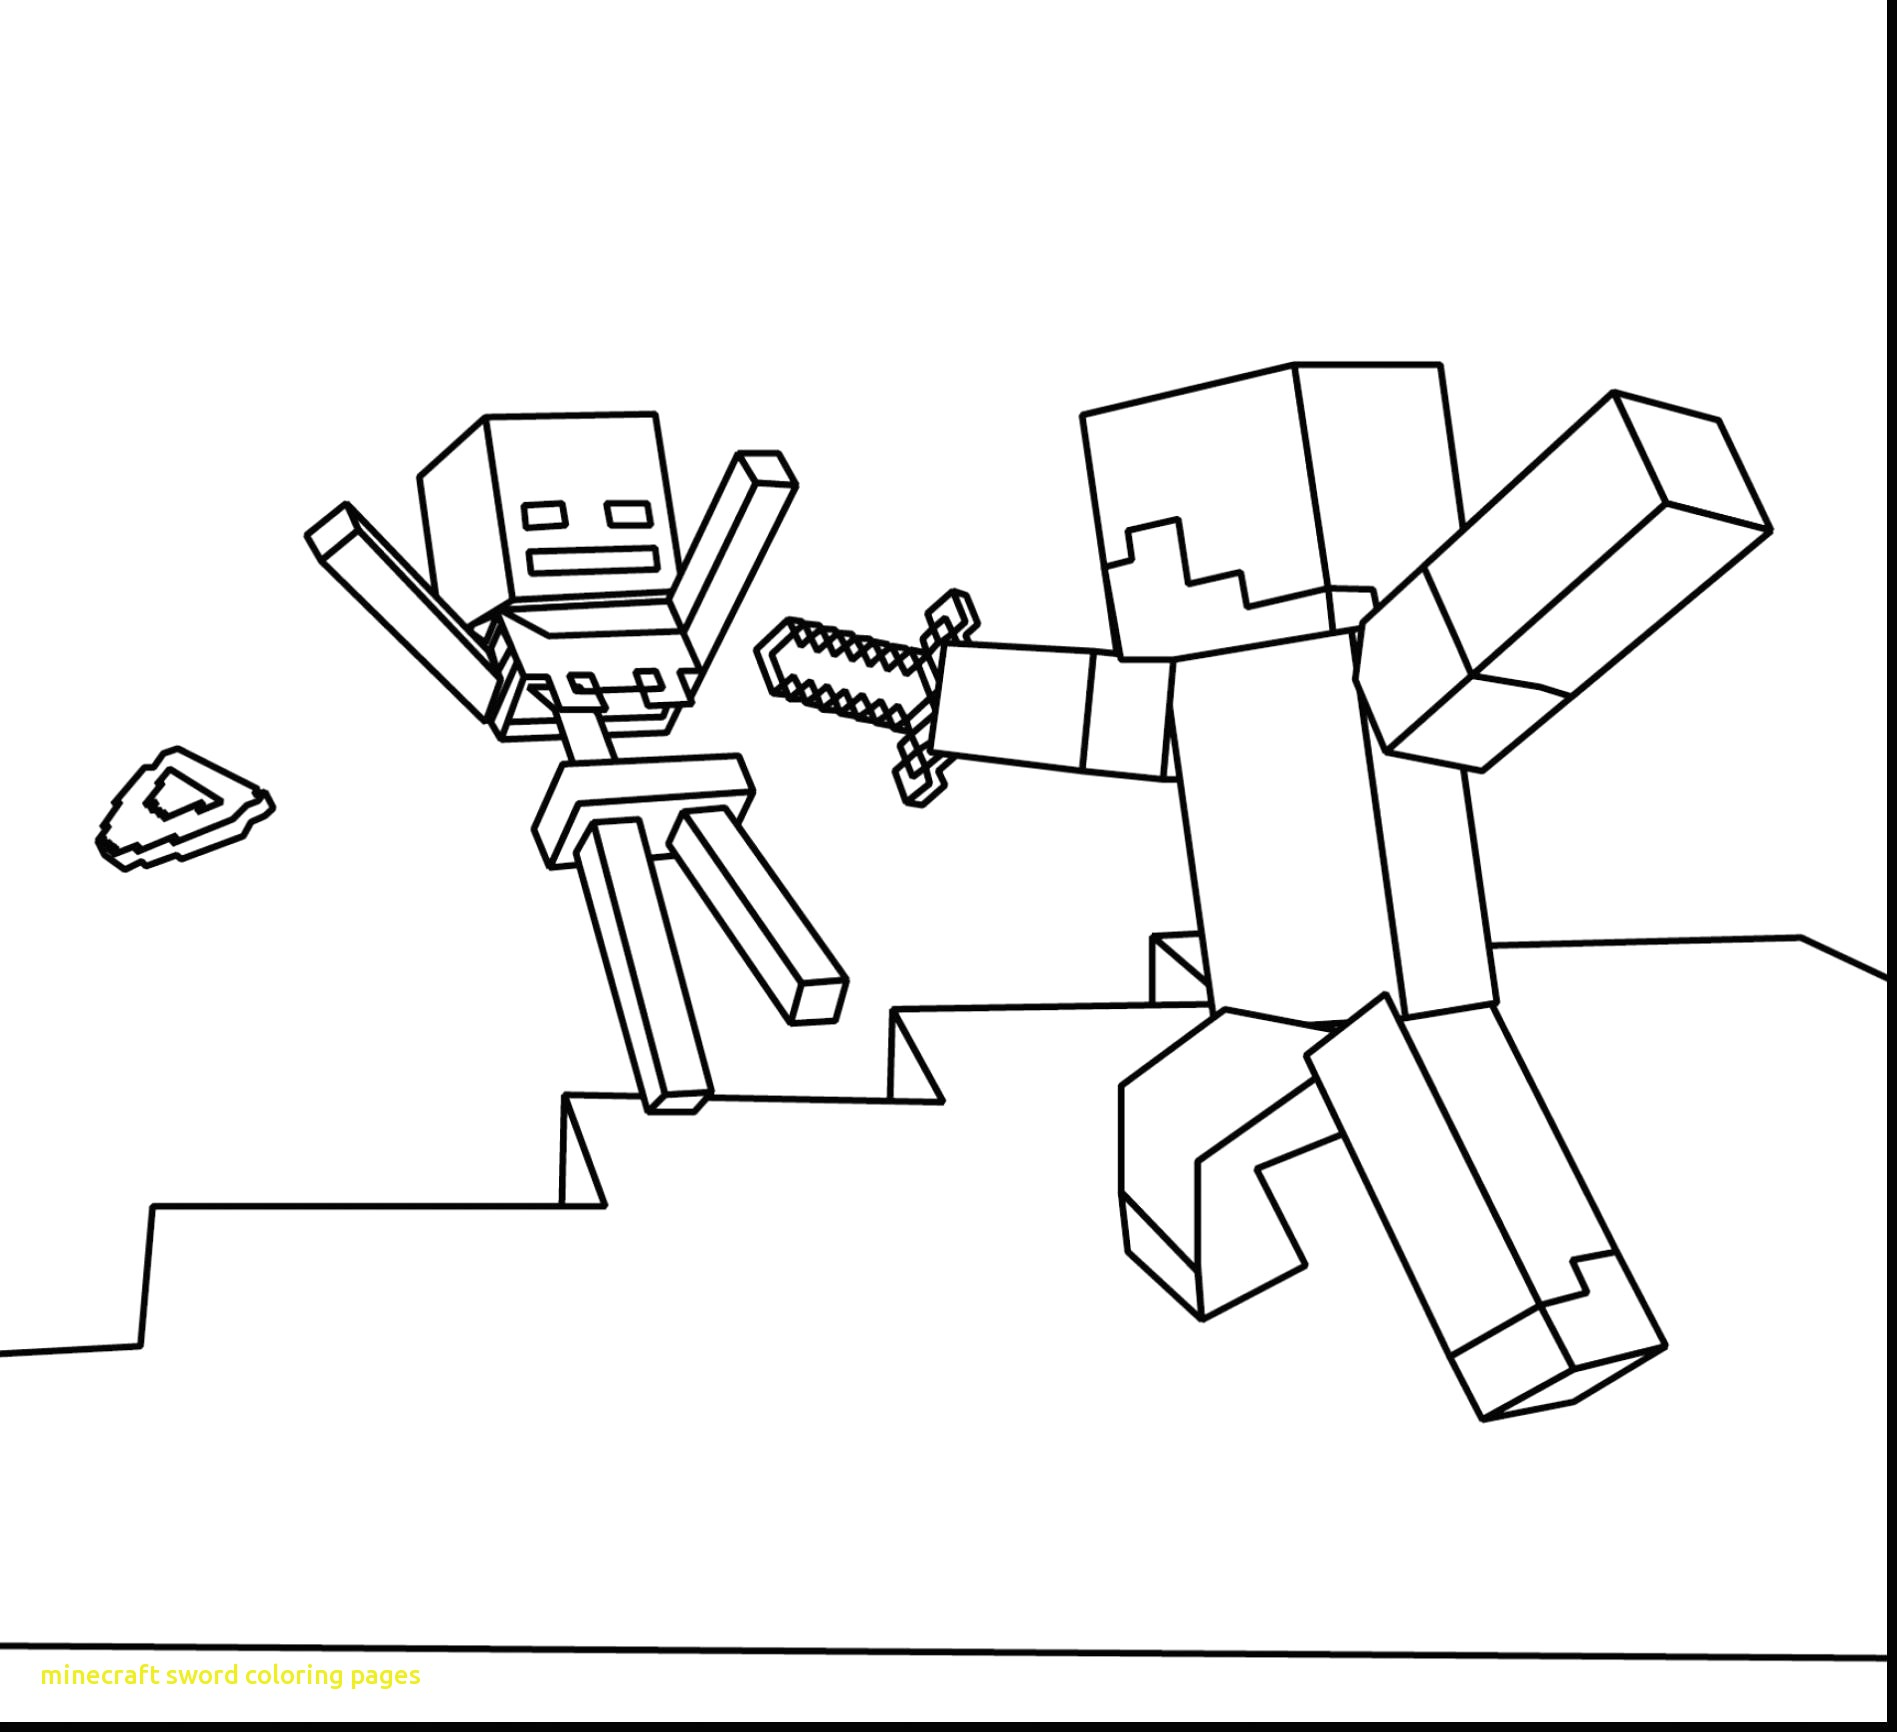 easy minecraft coloring pages free printable minecraft coloring pages easy pages minecraft coloring